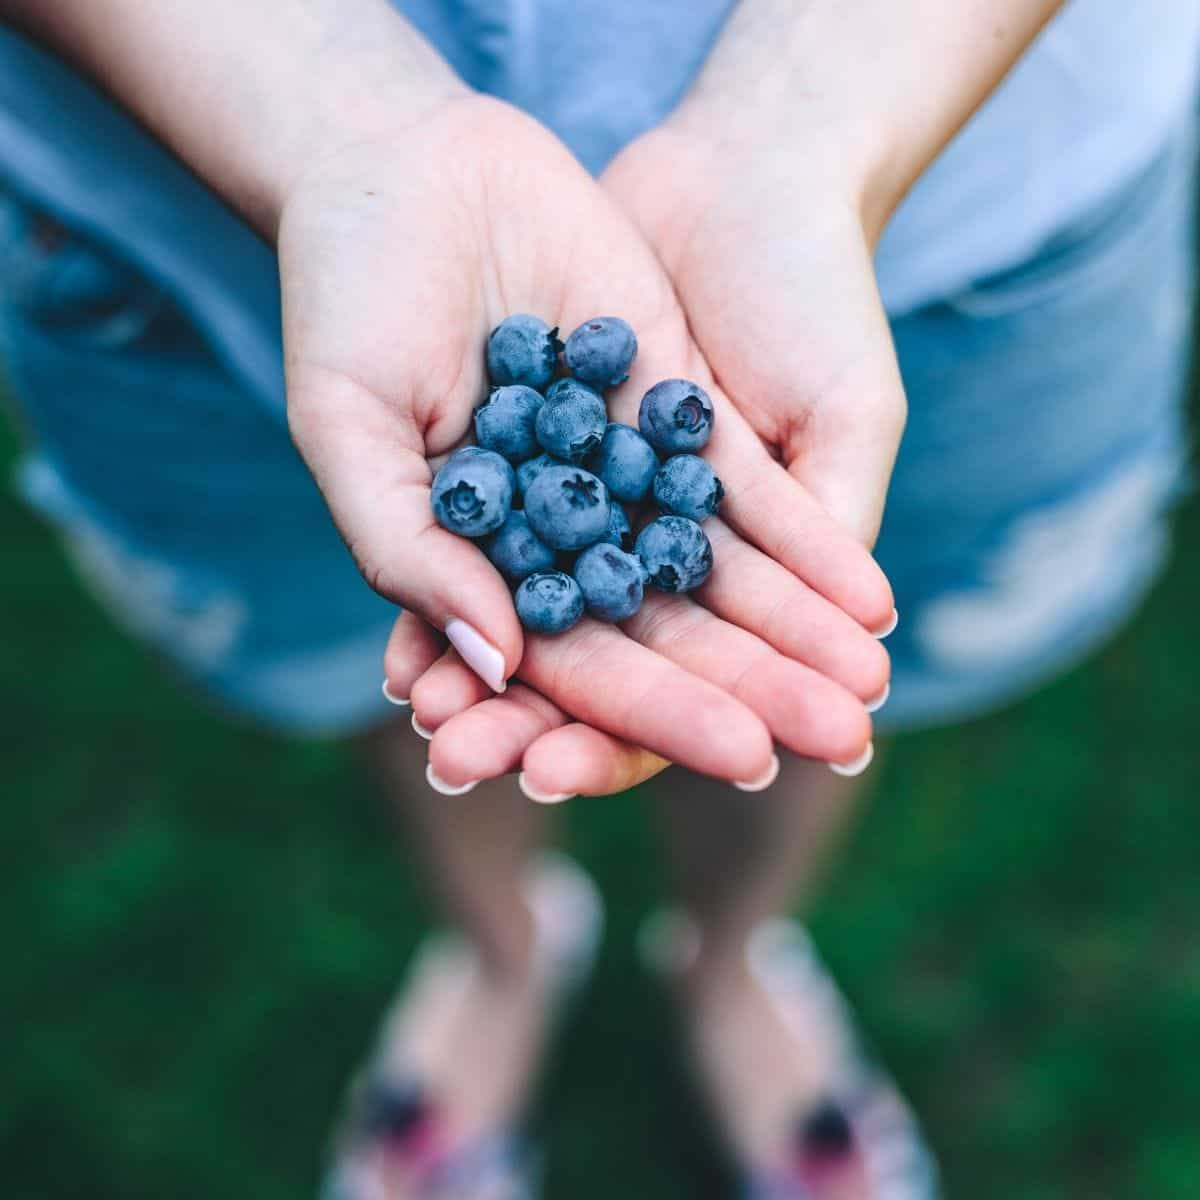 woman with blueberries in her hands